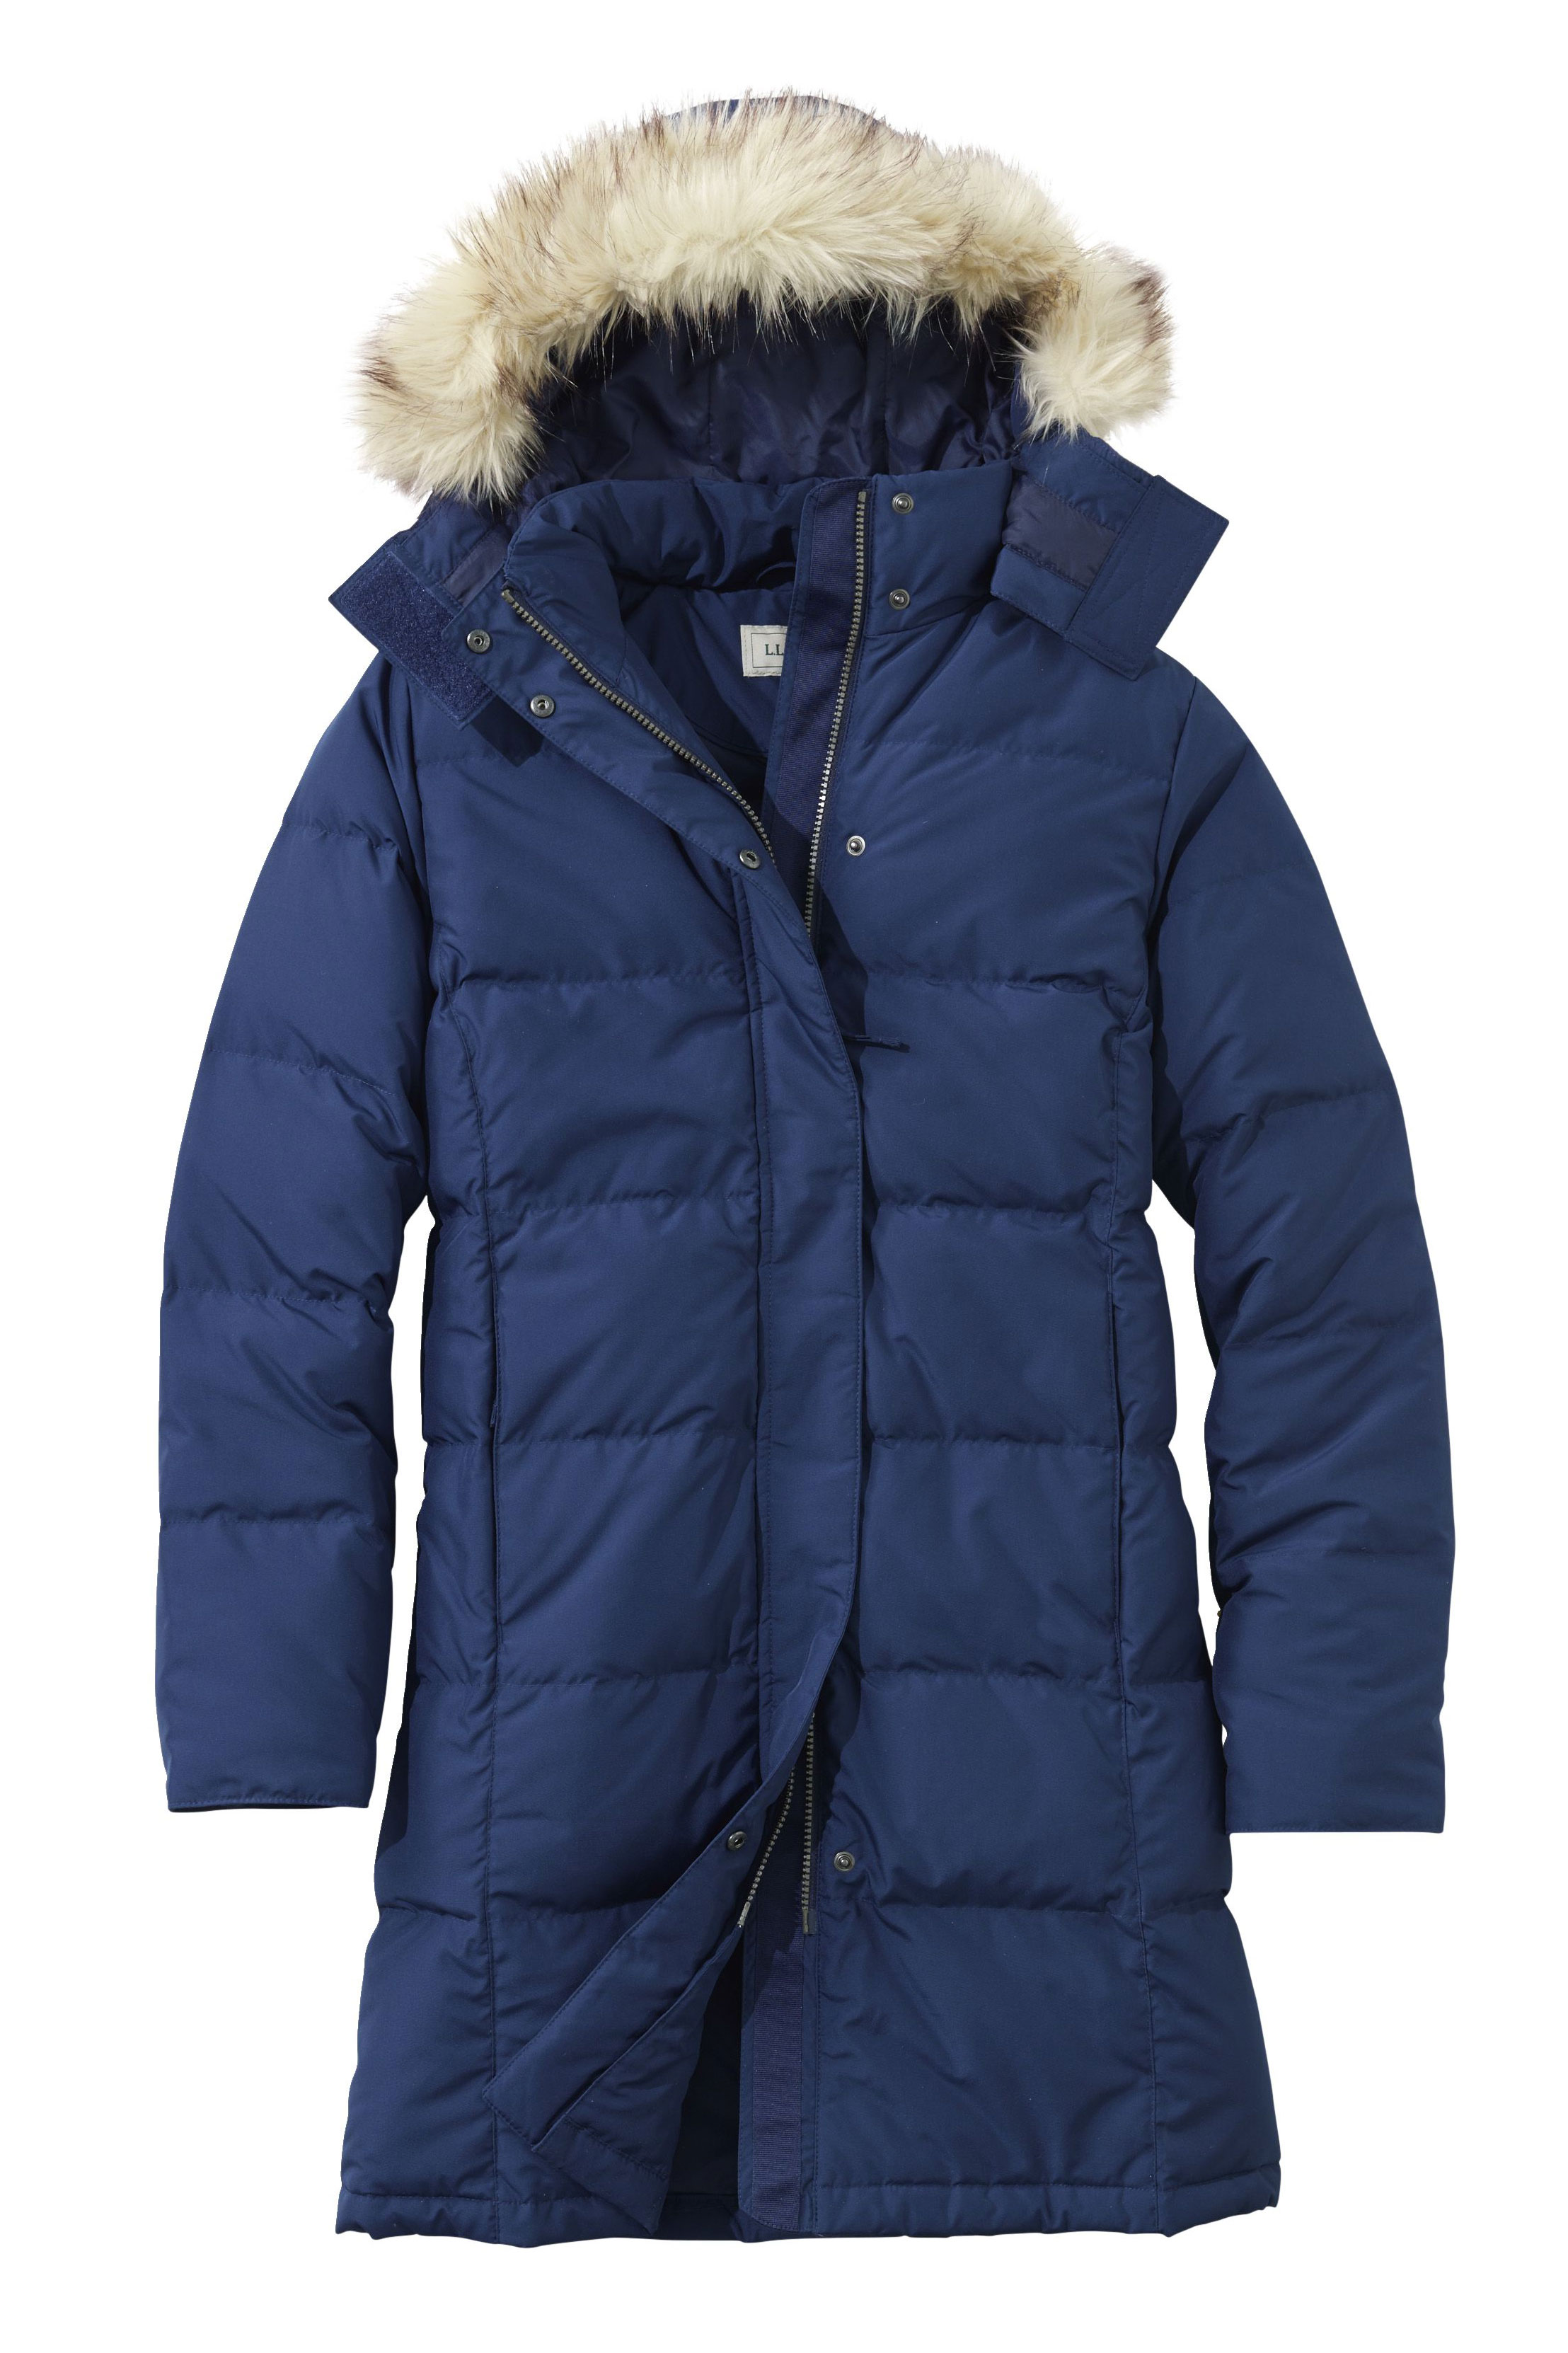 The Best Winter Jackets for Women of By Liz Williamson ⋅ Review Editor. Monday January 22, Following closely behind, the Marmot Montreaux is our Best Buy, and is the warmest jacket in the review, at a cool $, as well as Patagonia Tres 3-in-1 Parka - Women's, which wins a Top Pick for those residing in wet climates.